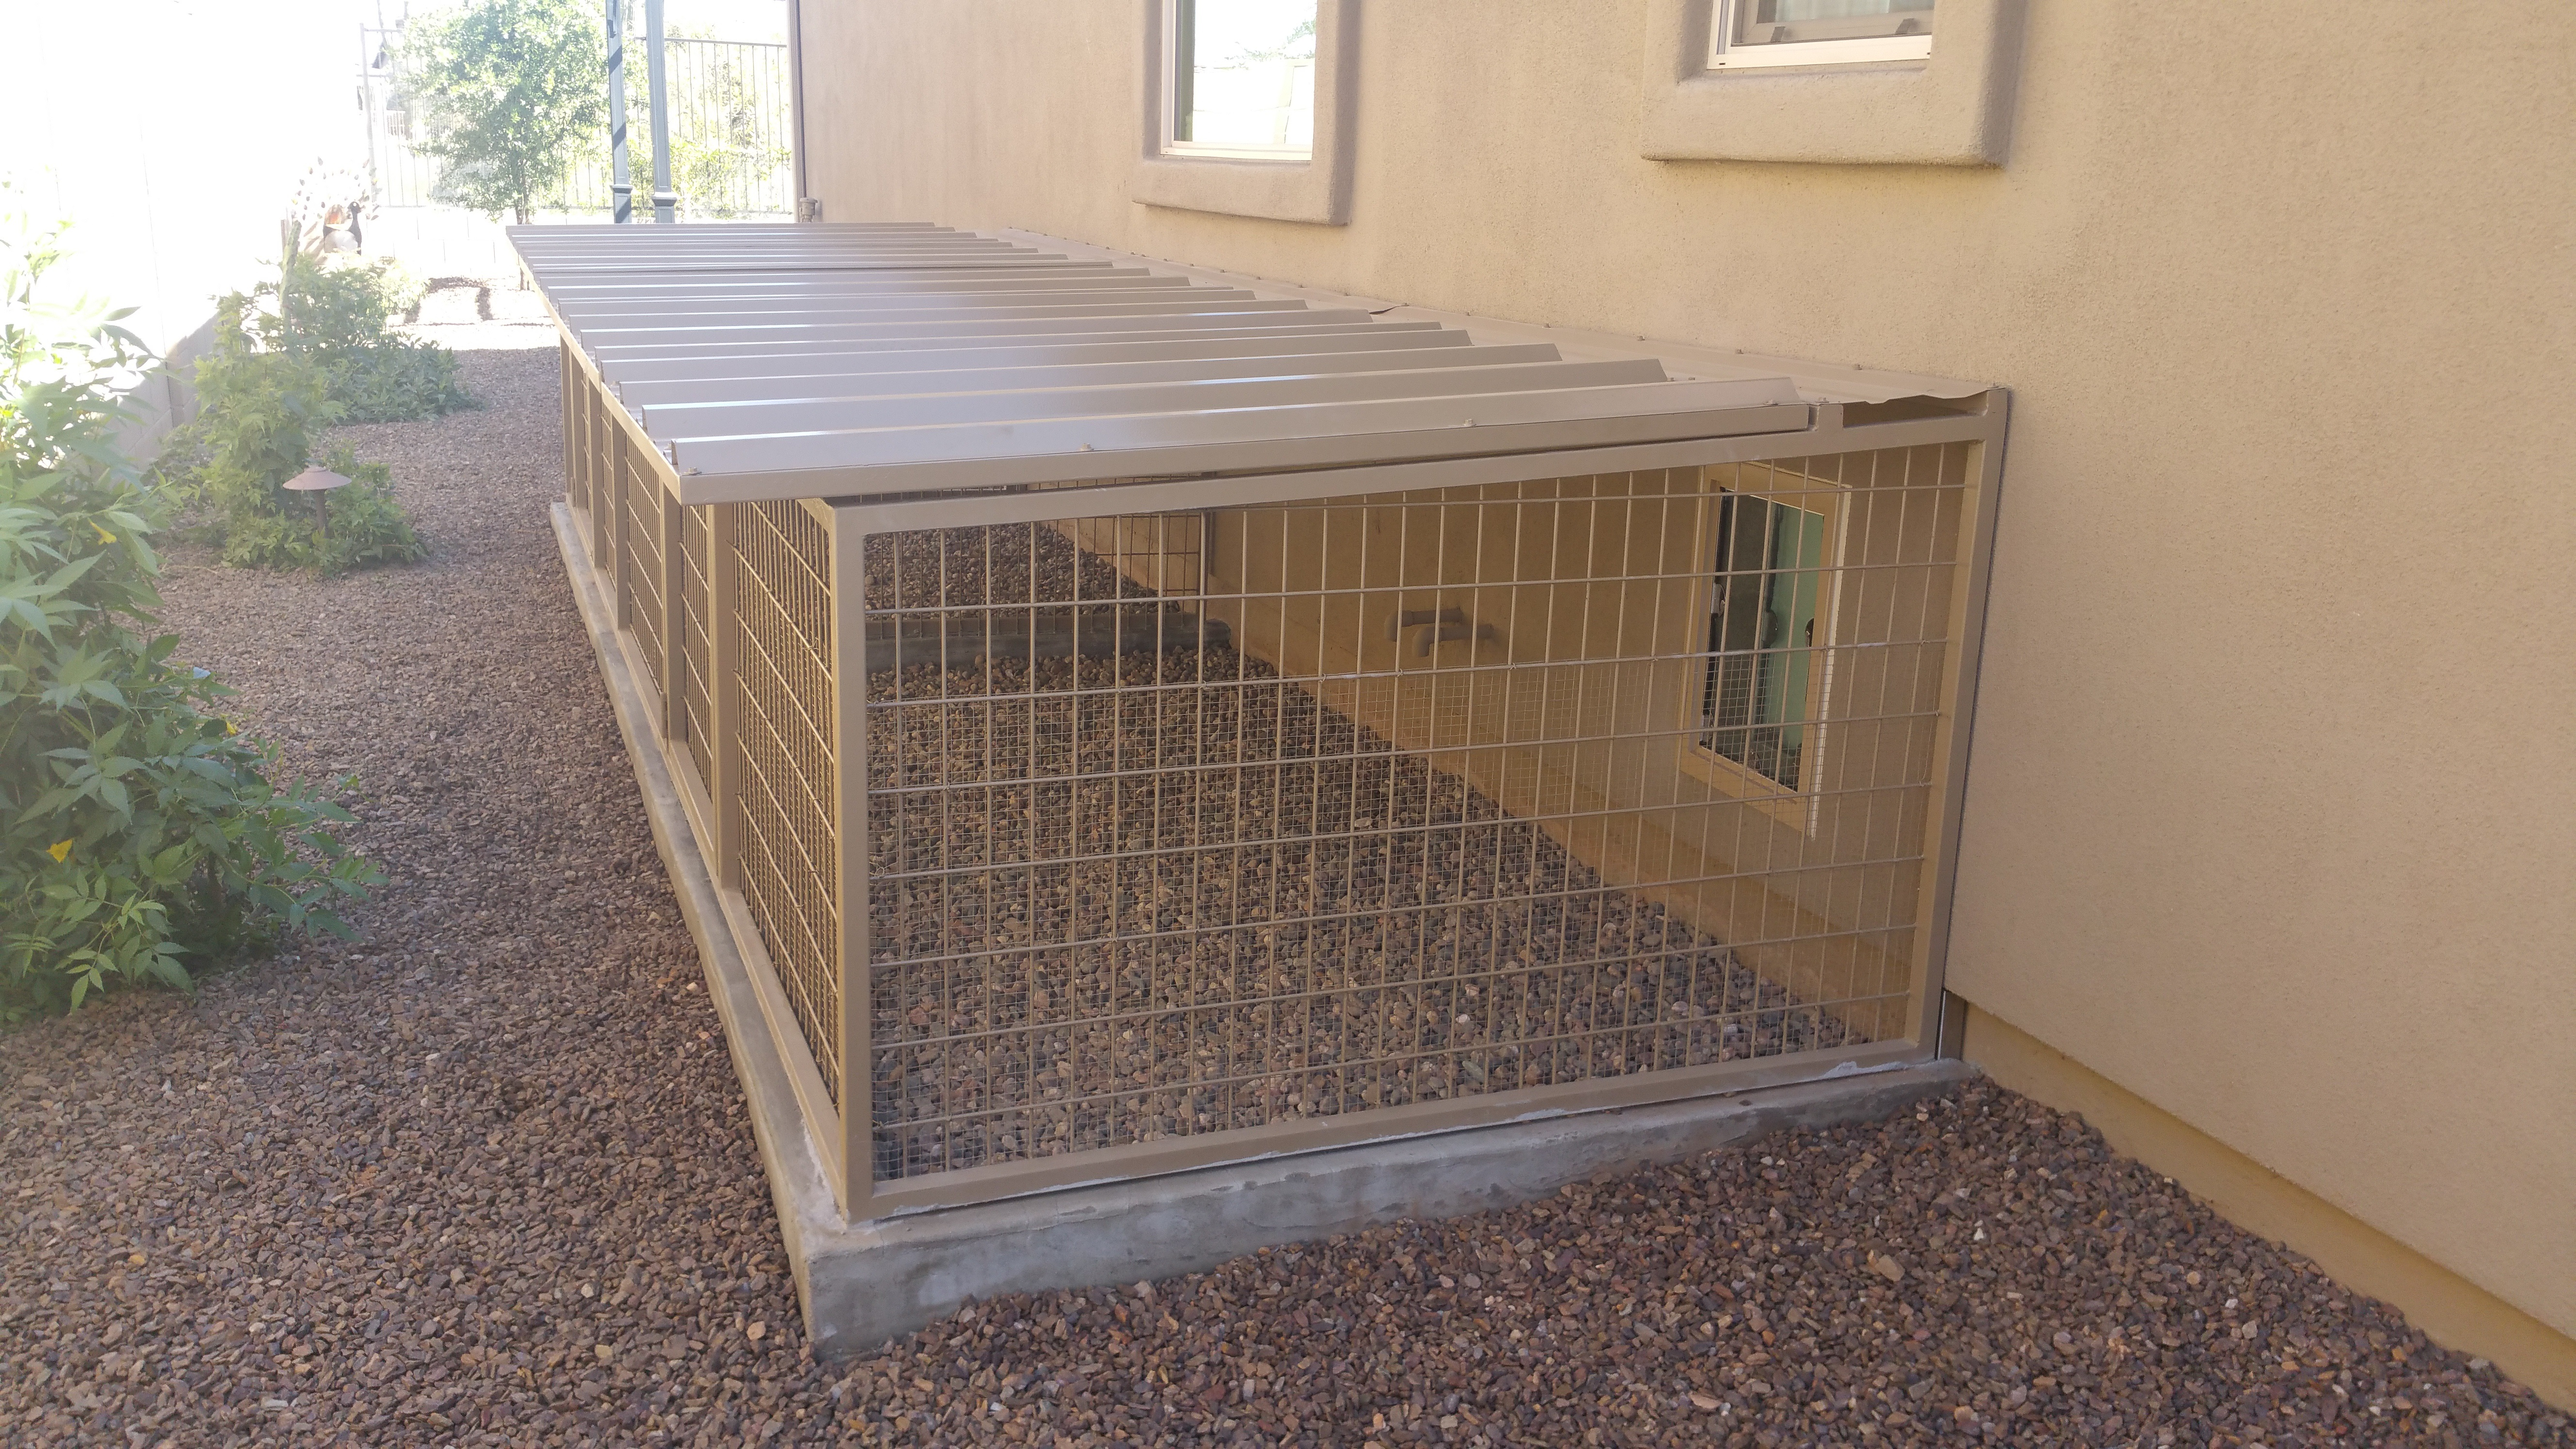 Predator Proof Dog Kennels In CA.